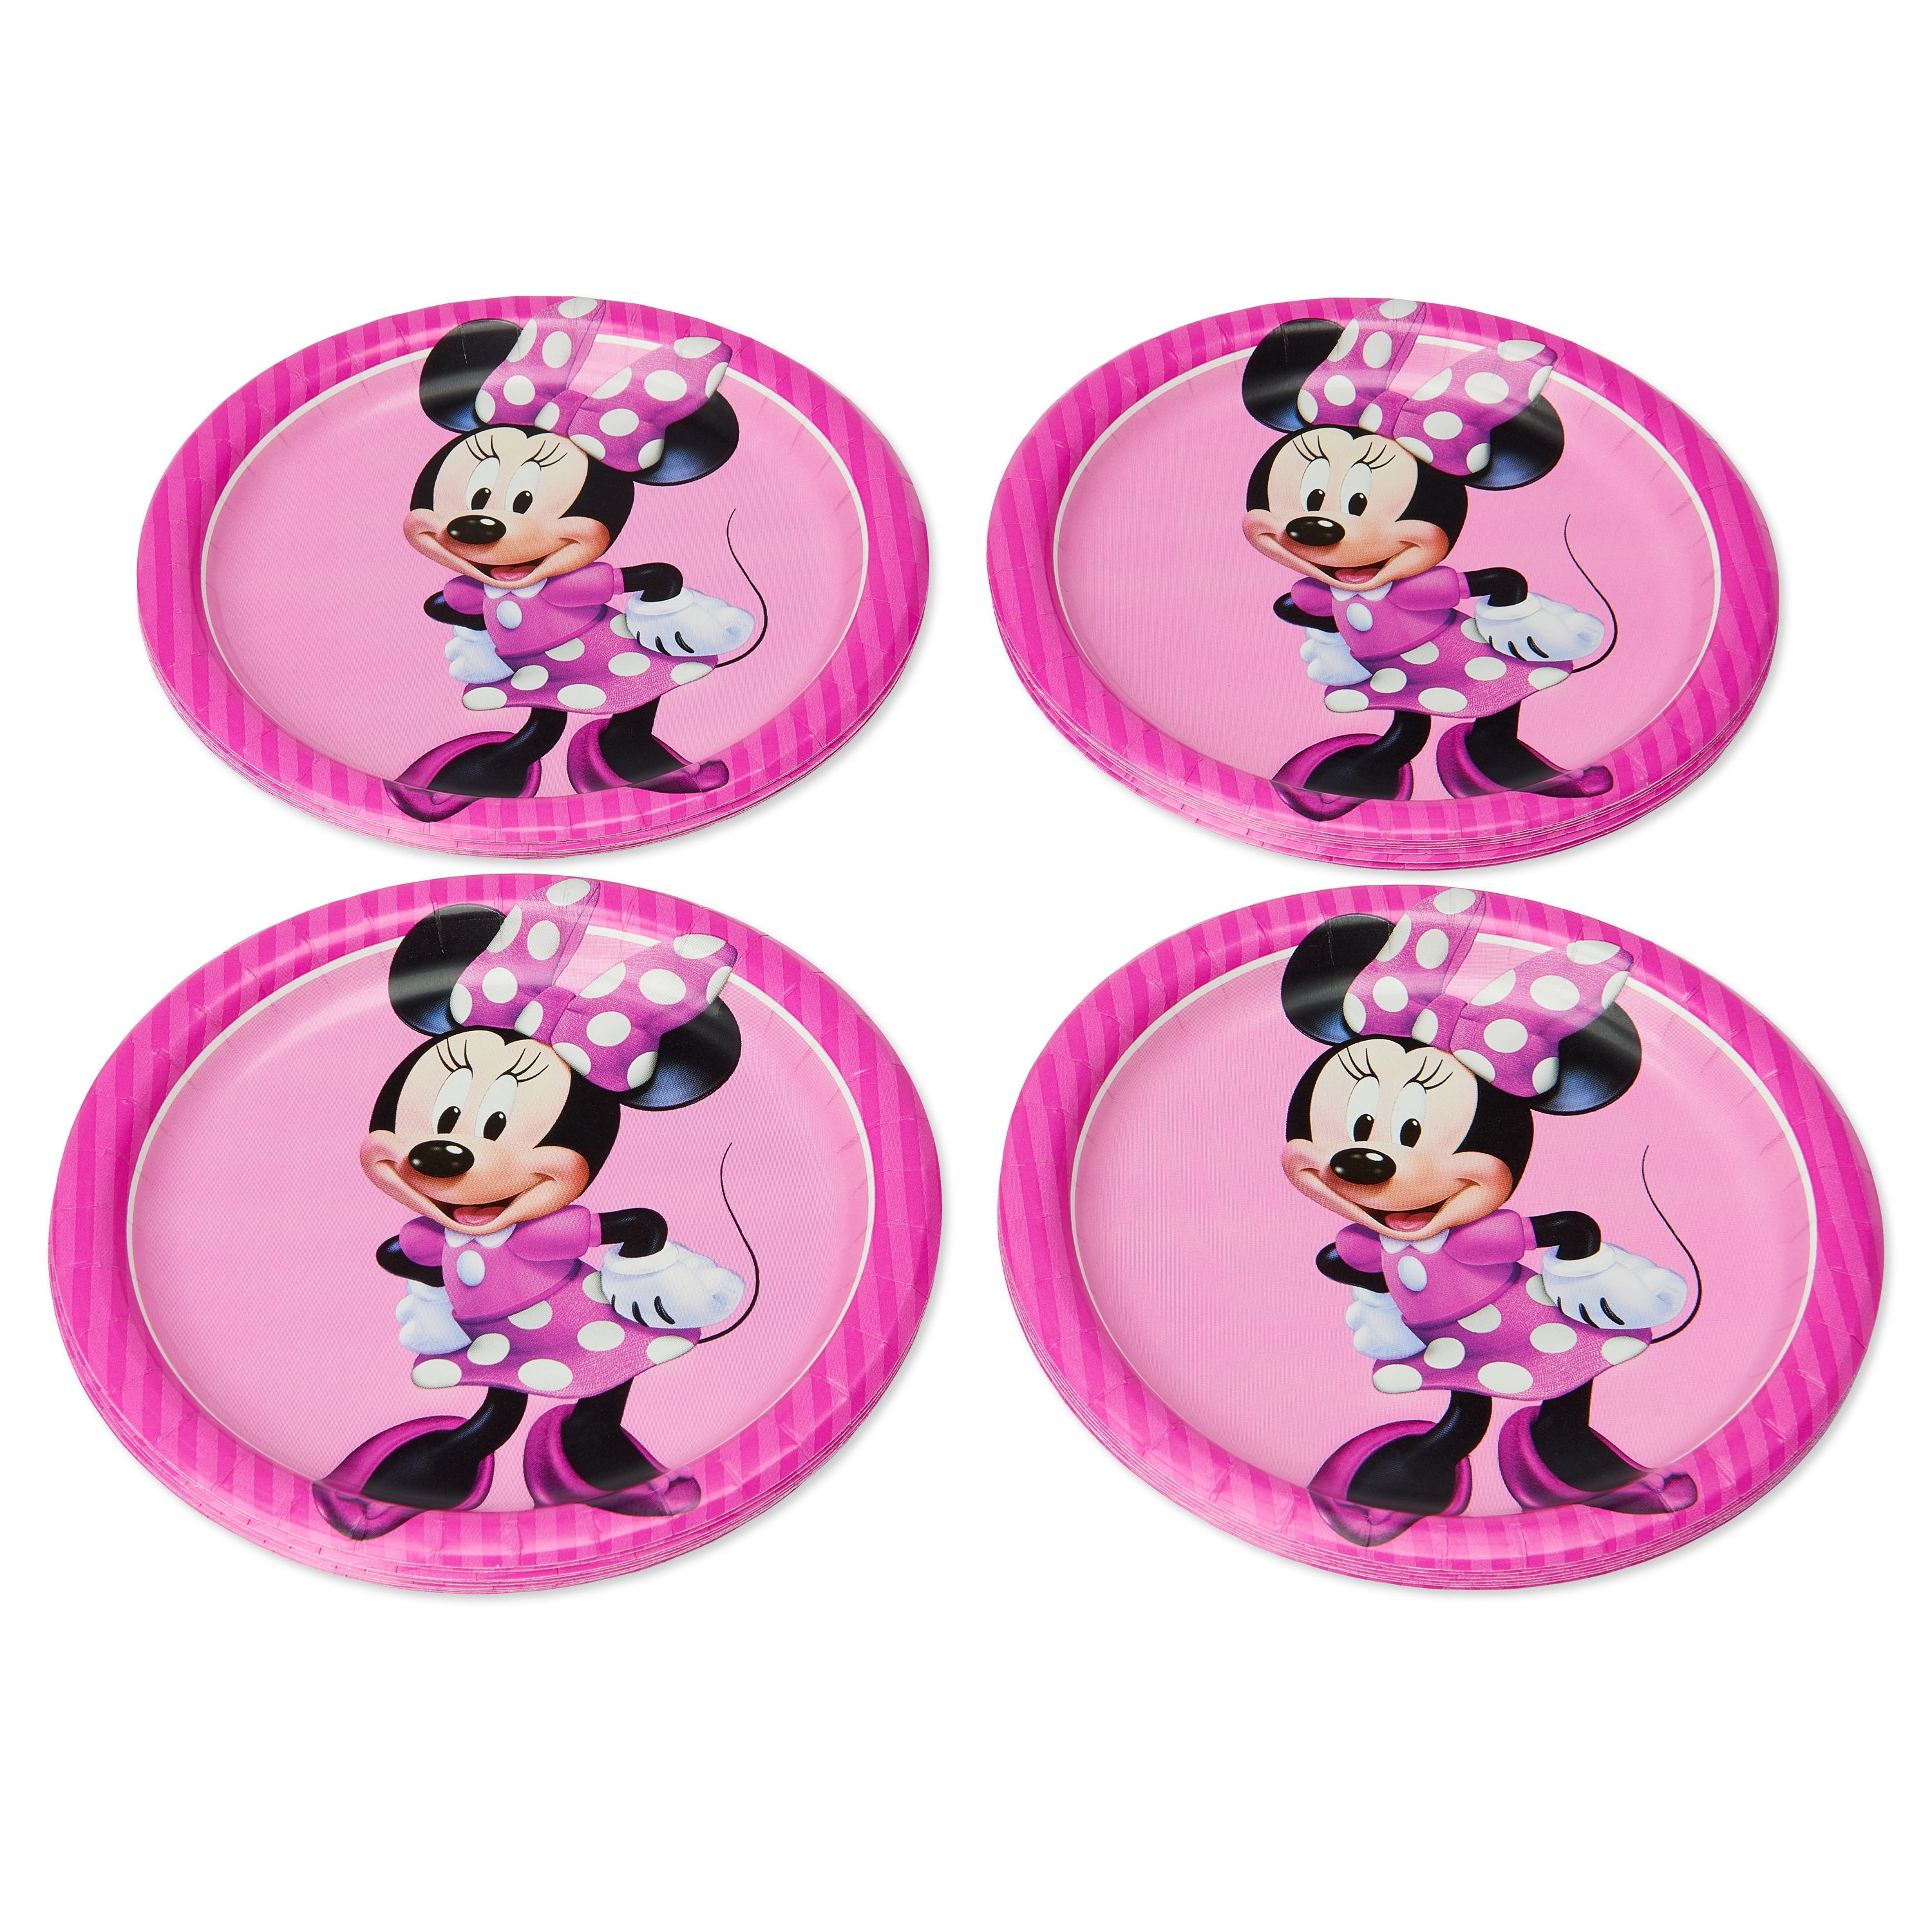 American Greetings Minnie Mouse Paper Dessert Plates, 36-Count